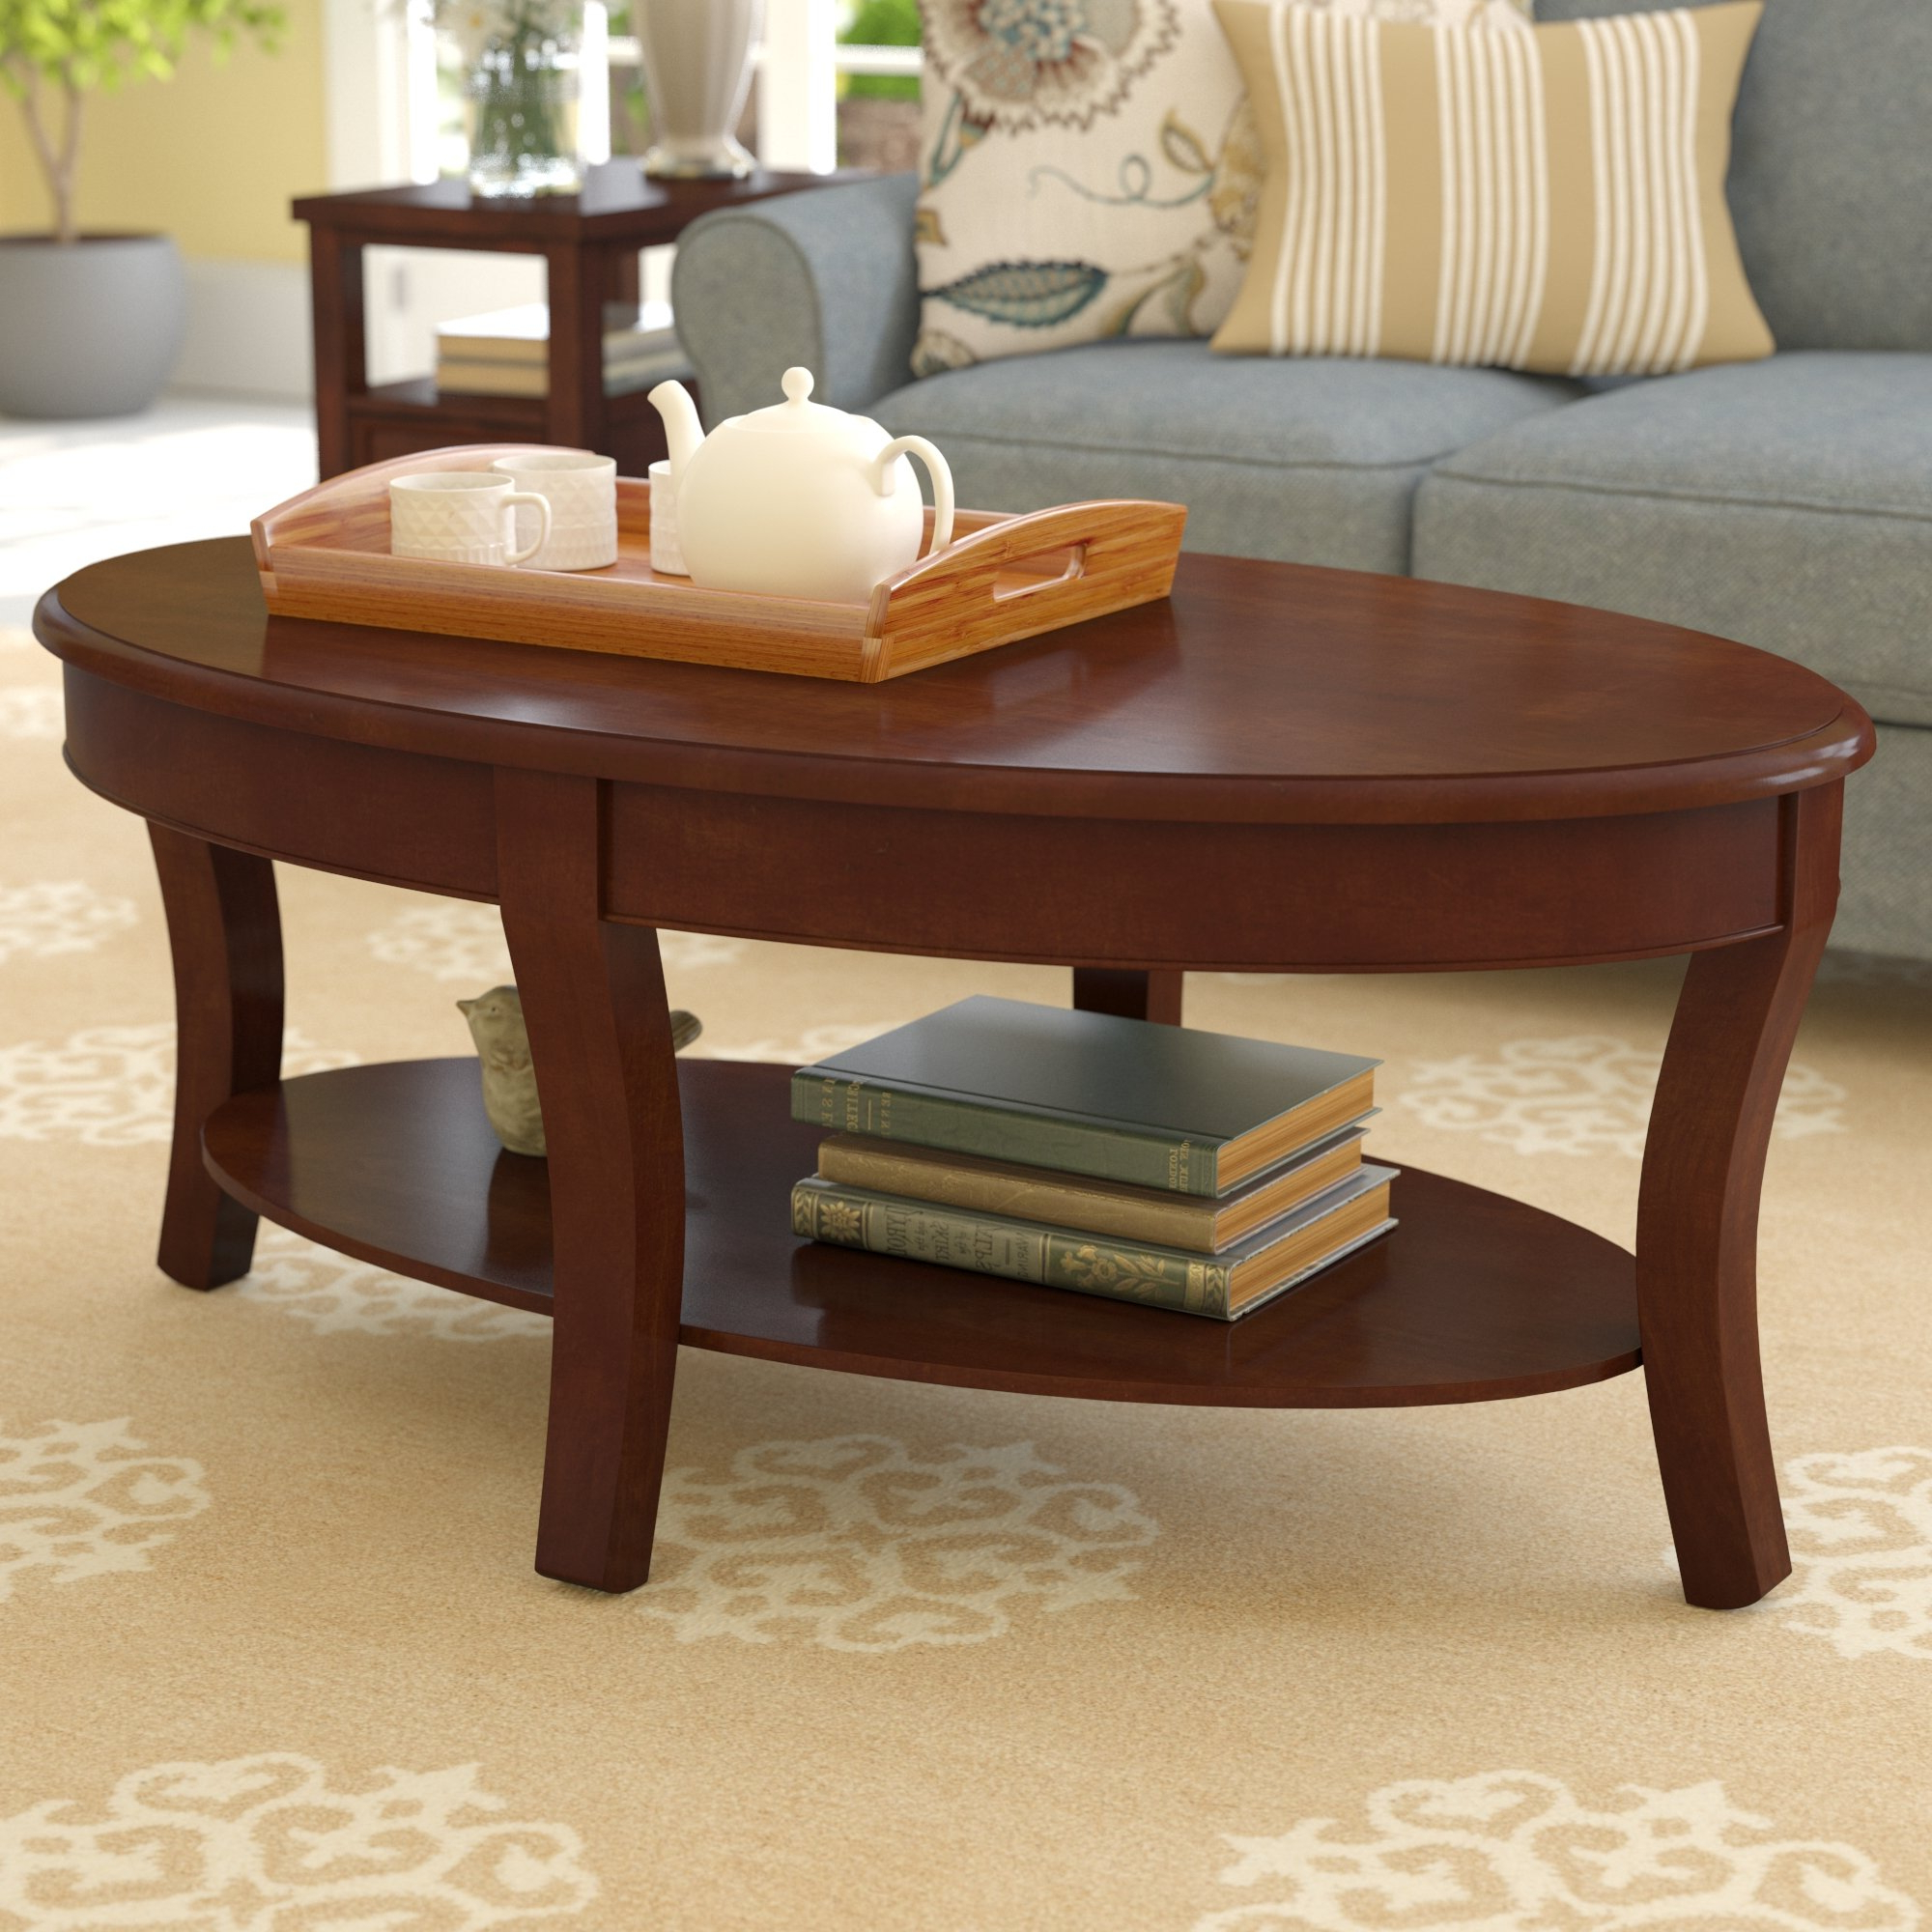 Wayfair For Stack Hi Gloss Wood Coffee Tables (Gallery 6 of 20)